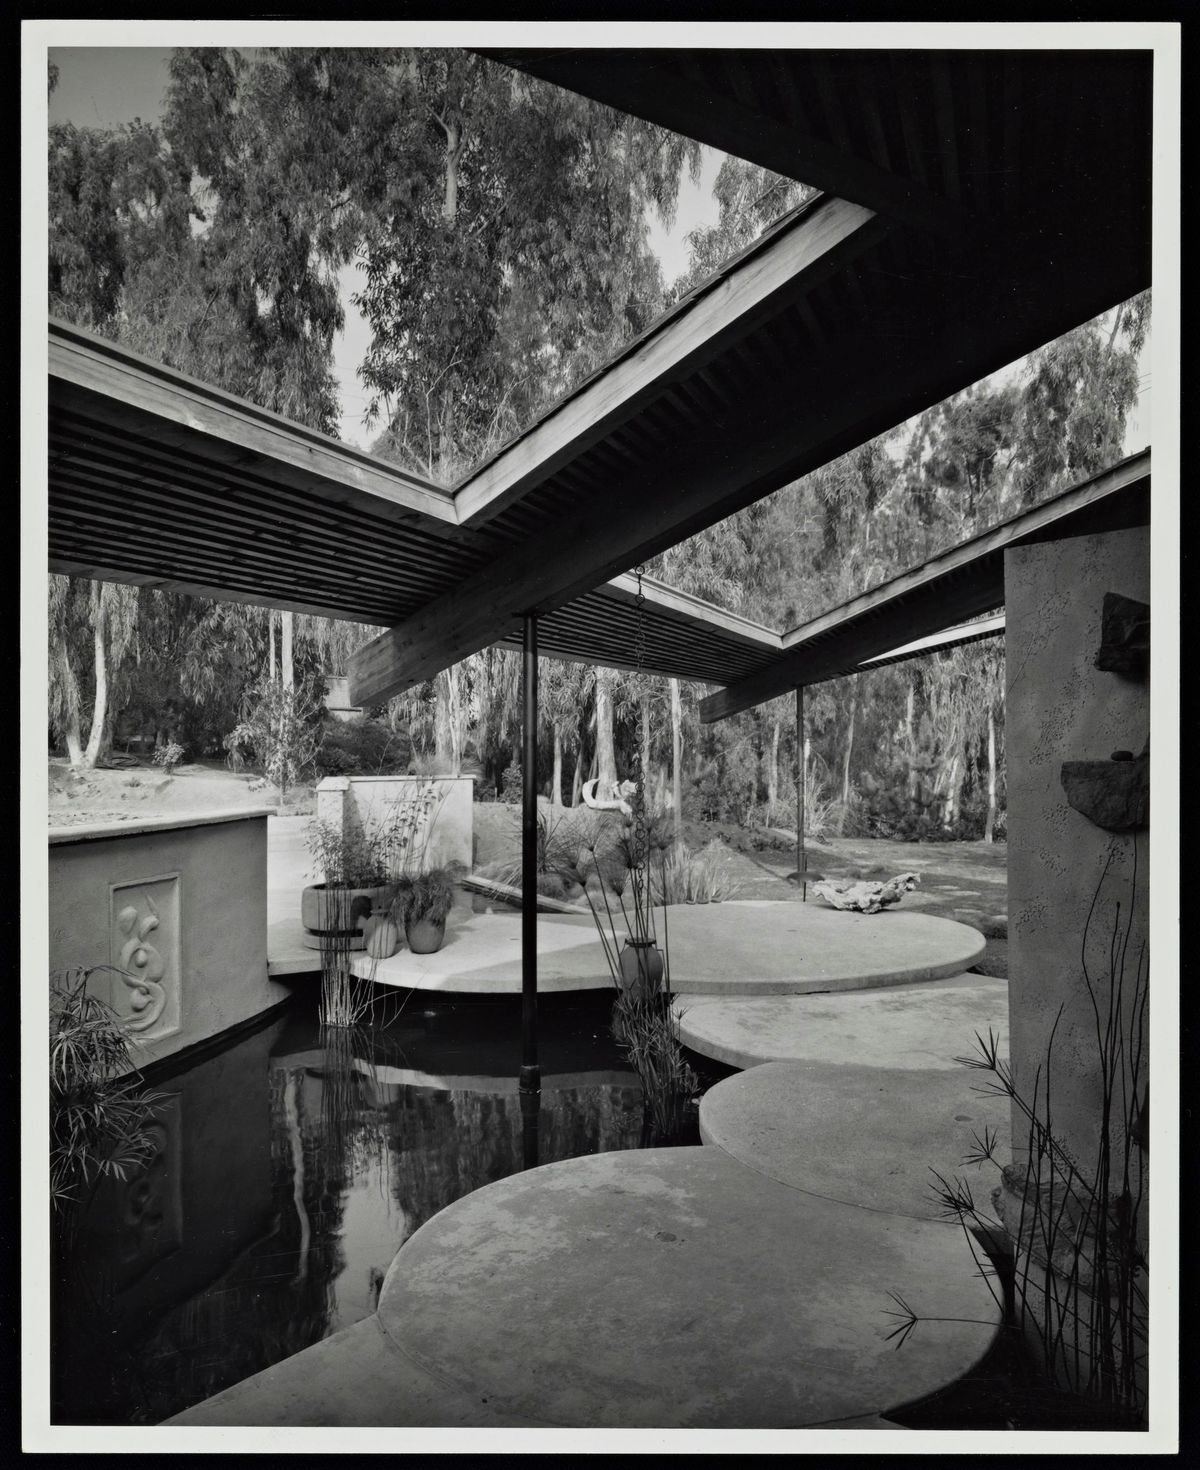 Black and white photograph showing an outdoor area with circular stone path and large overhang.